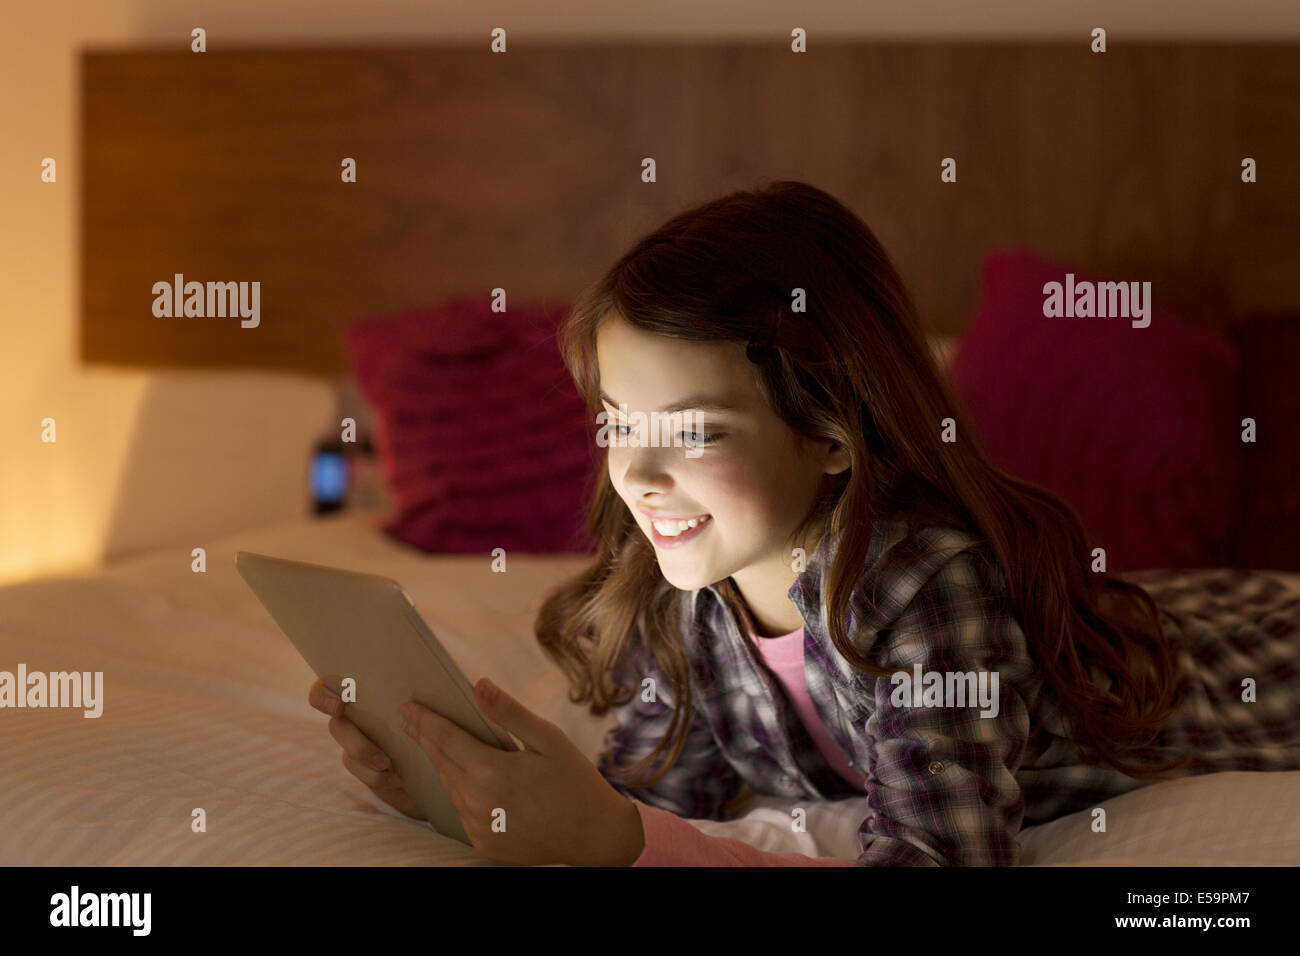 Girl using digital tablet on bed - Stock Image